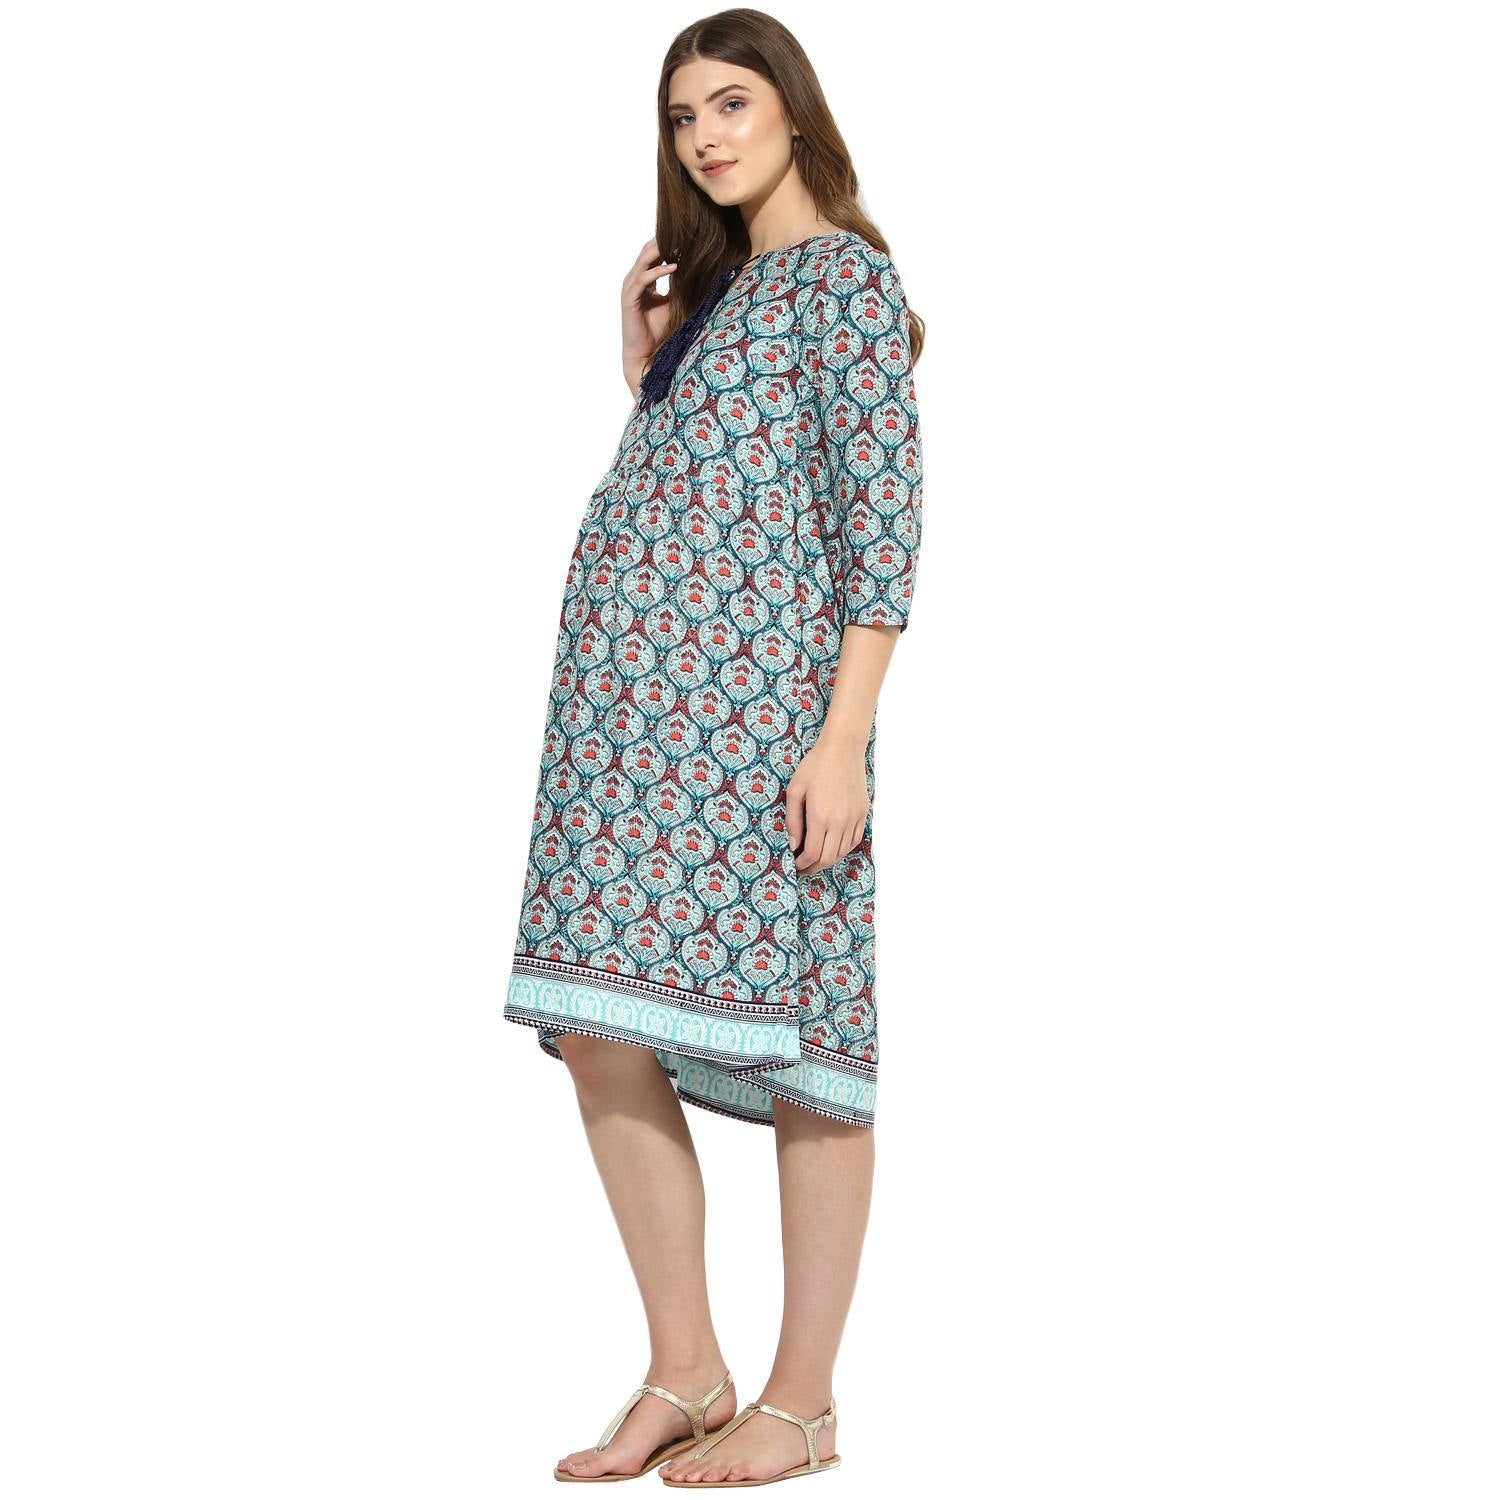 Light Sea Green A-line Maternity Dress Made of Crepe- Mine4Nine